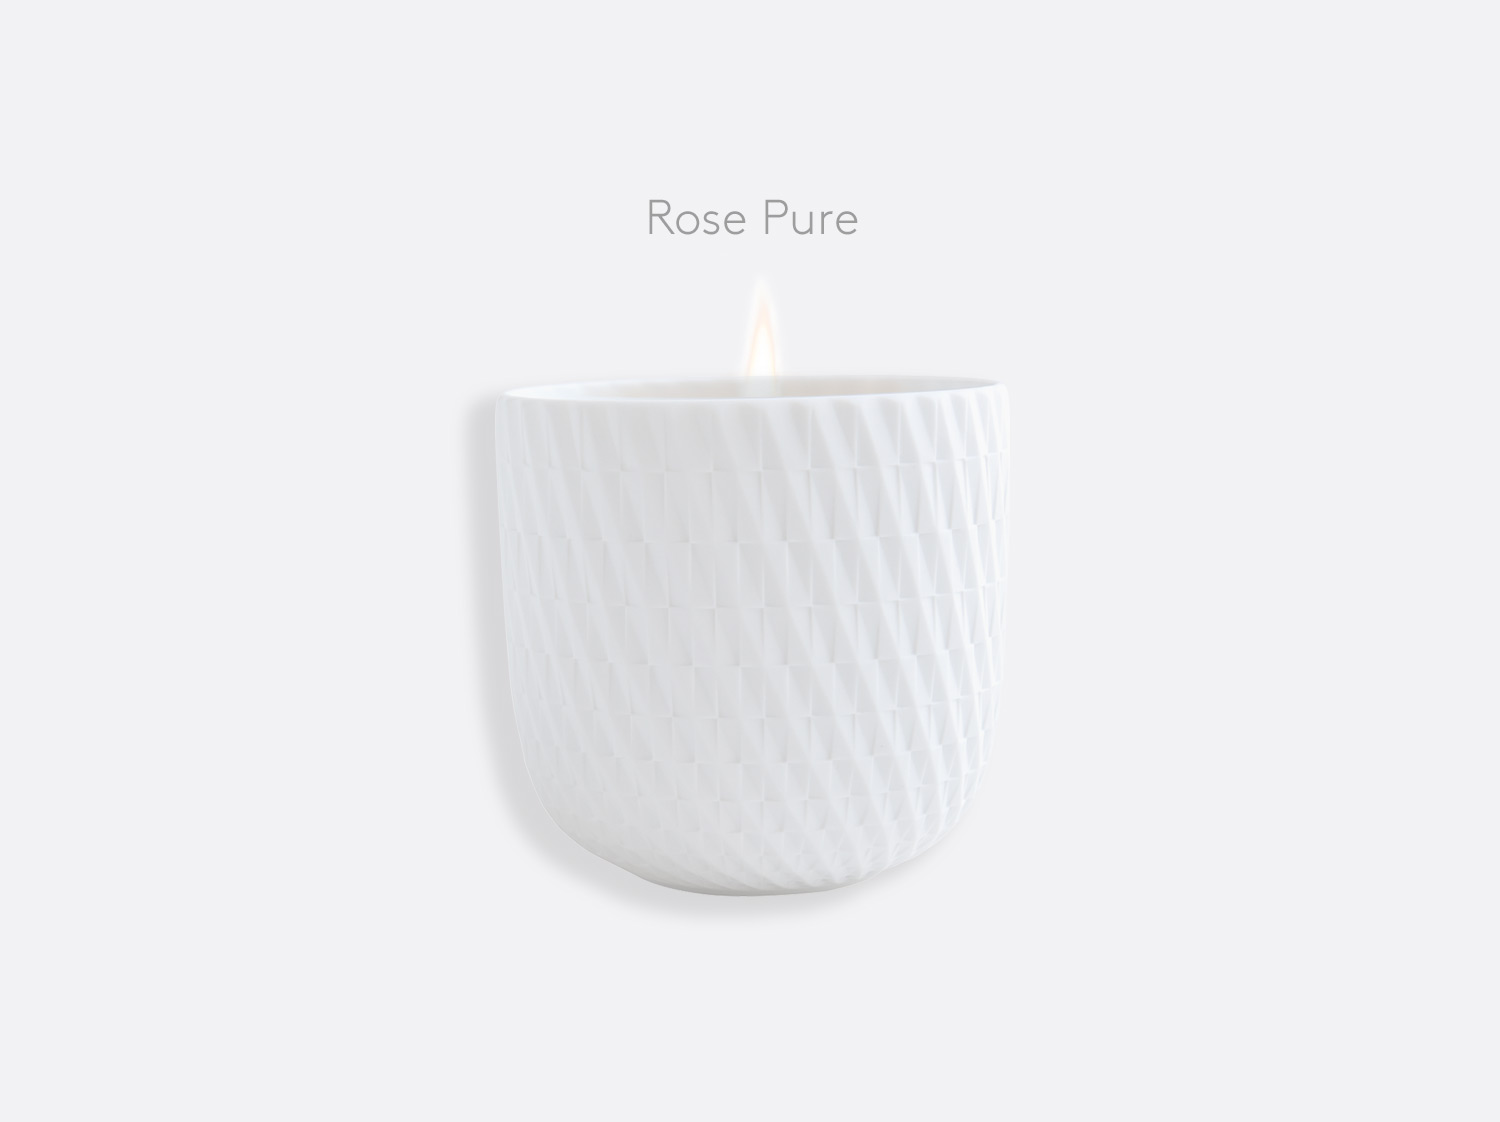 "Pot à bougie 200g rechargeable en biscuit gravé ""Rose Pure"" en porcelaine de la collection TWIST Bernardaud"